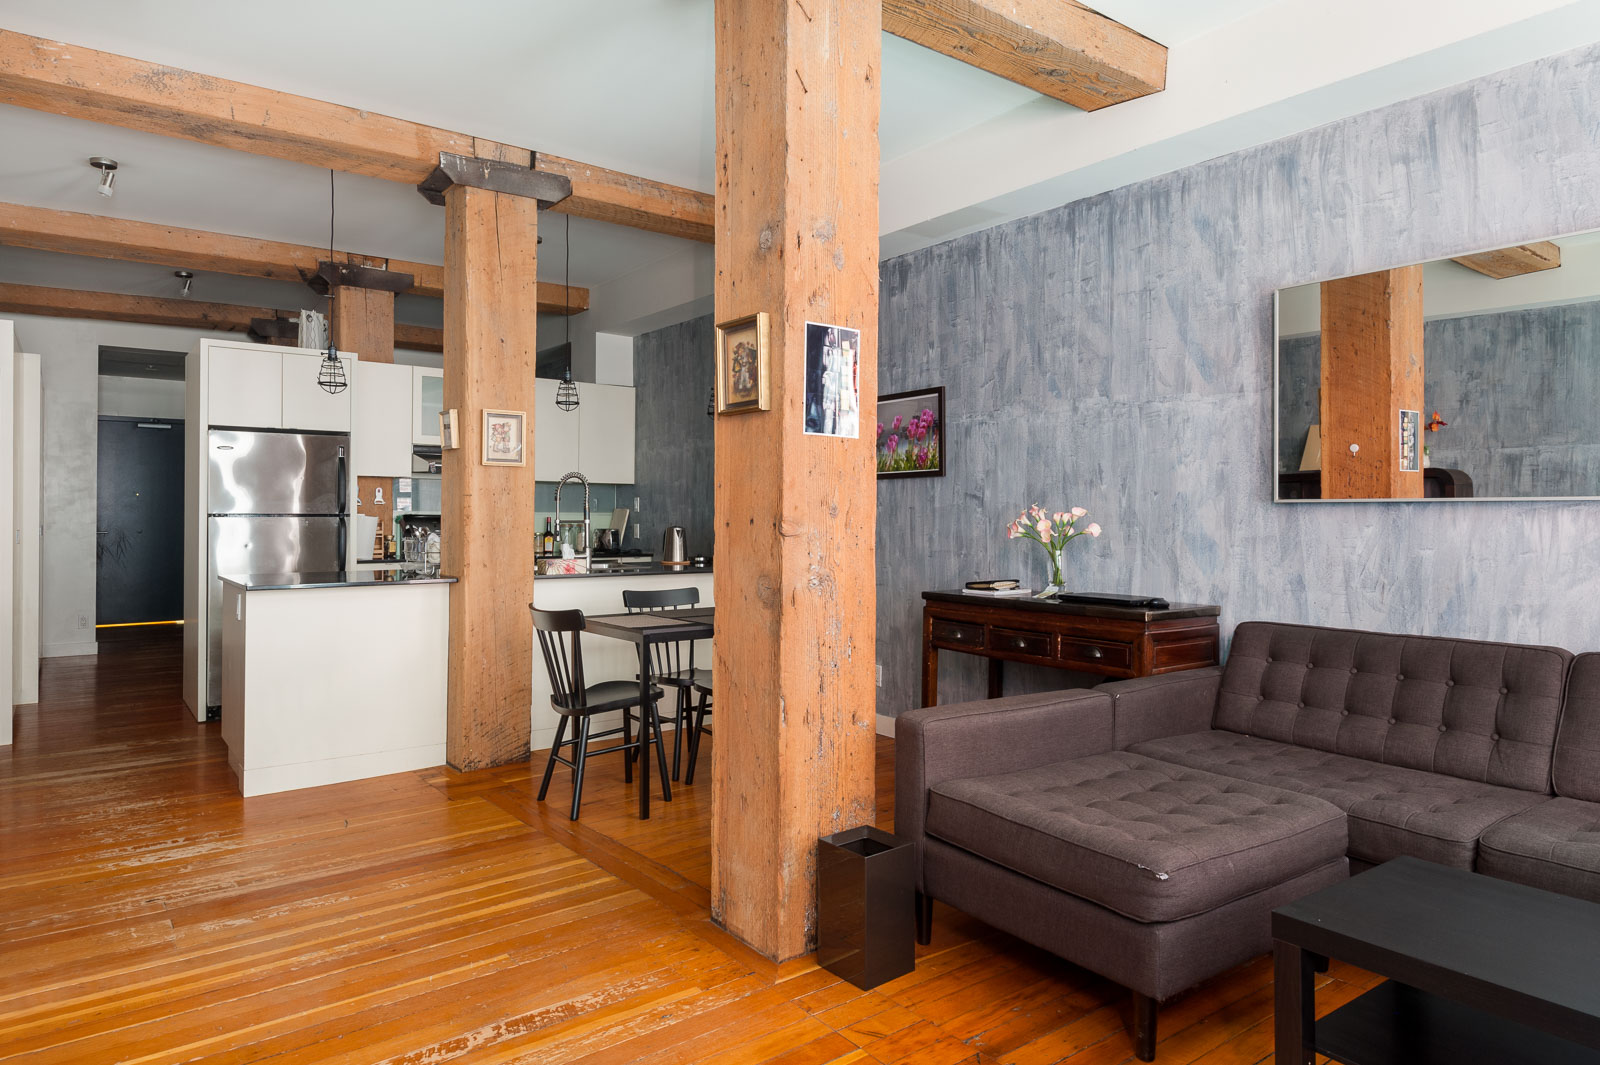 Kitchen in furnished Vancouver rental looks out on living area, supported by wooden beams.